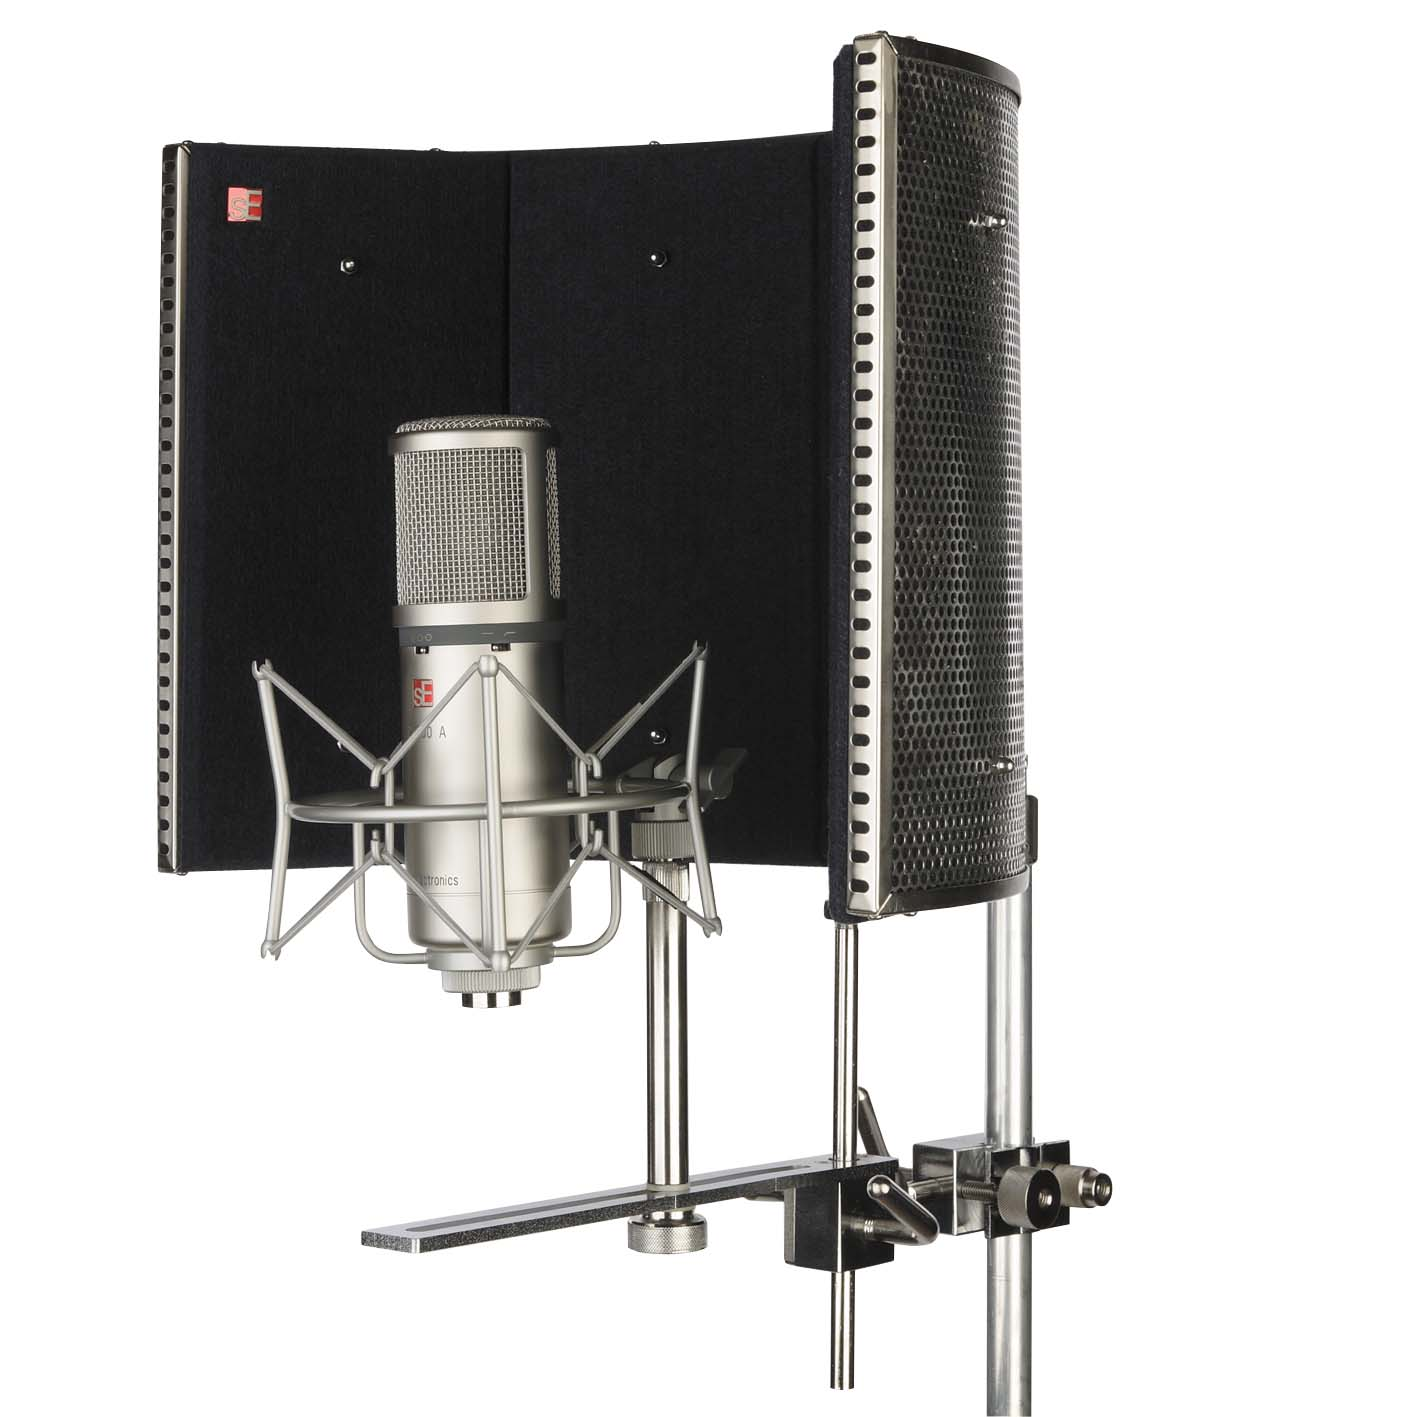 Reflexion Filter (microphone not included)